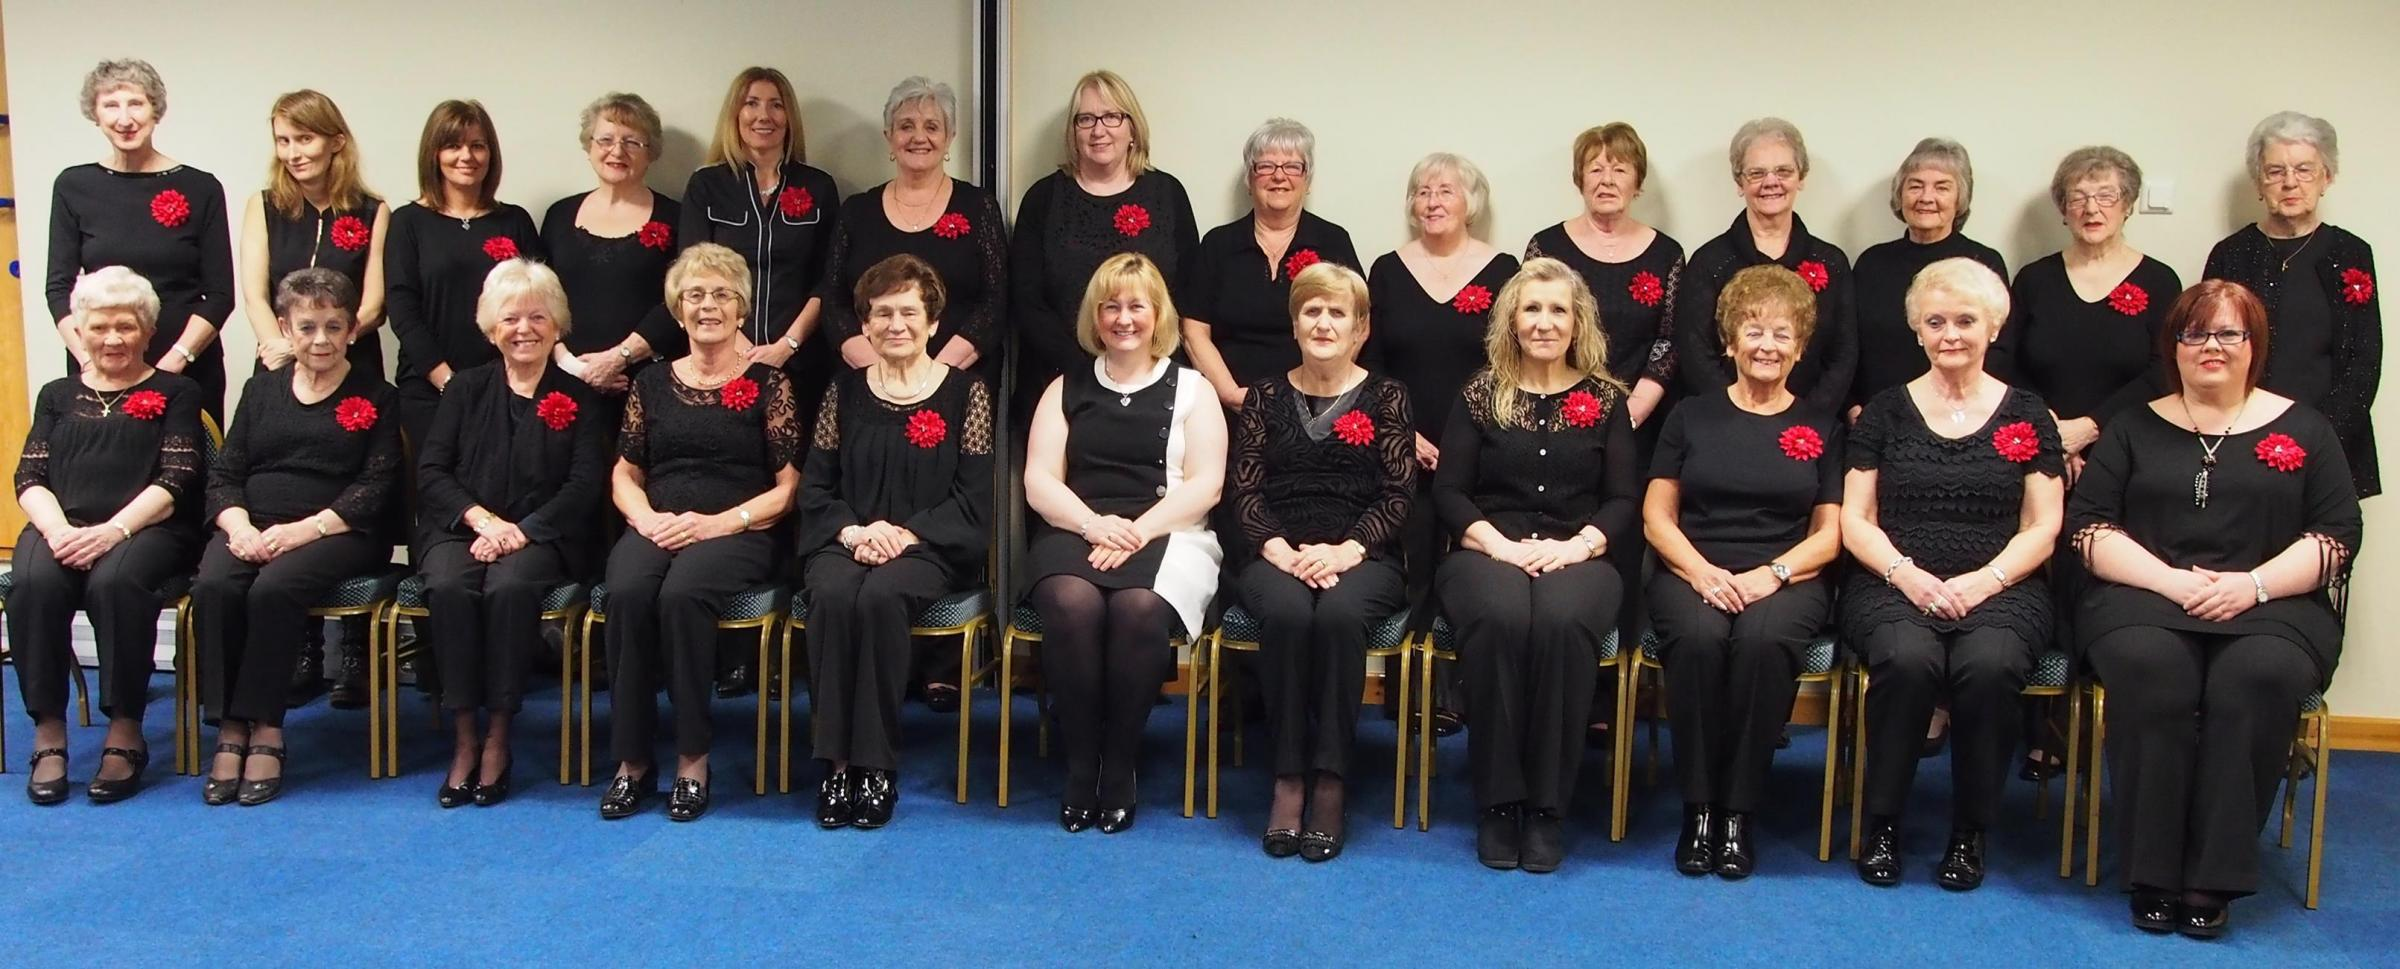 Cor Merched Tybie have been performing in the area for the past three decades